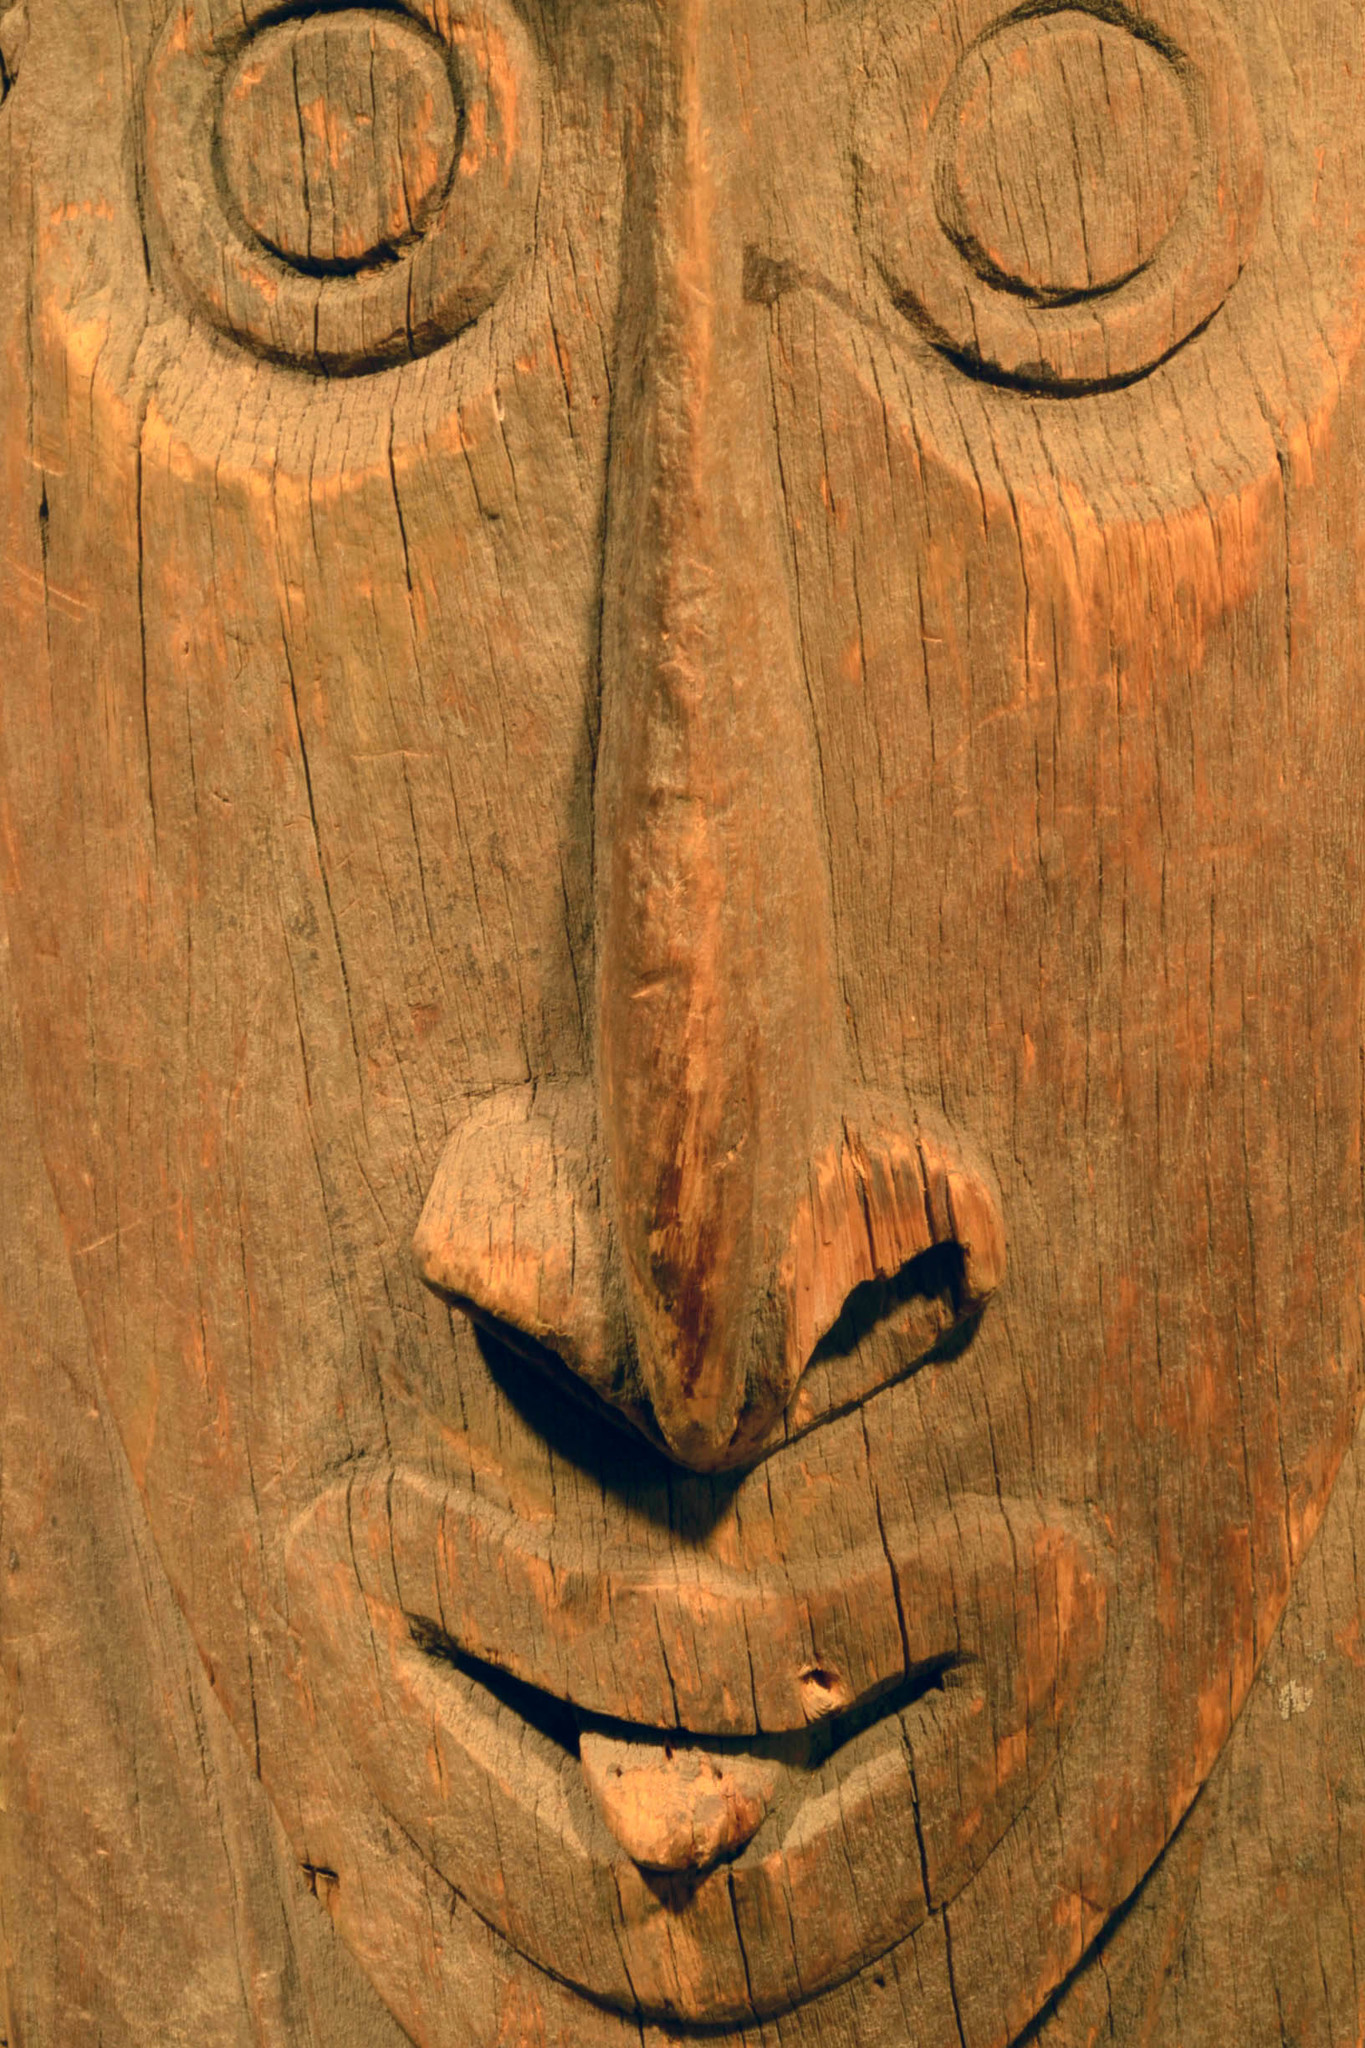 House post with stylized ancestor spirit